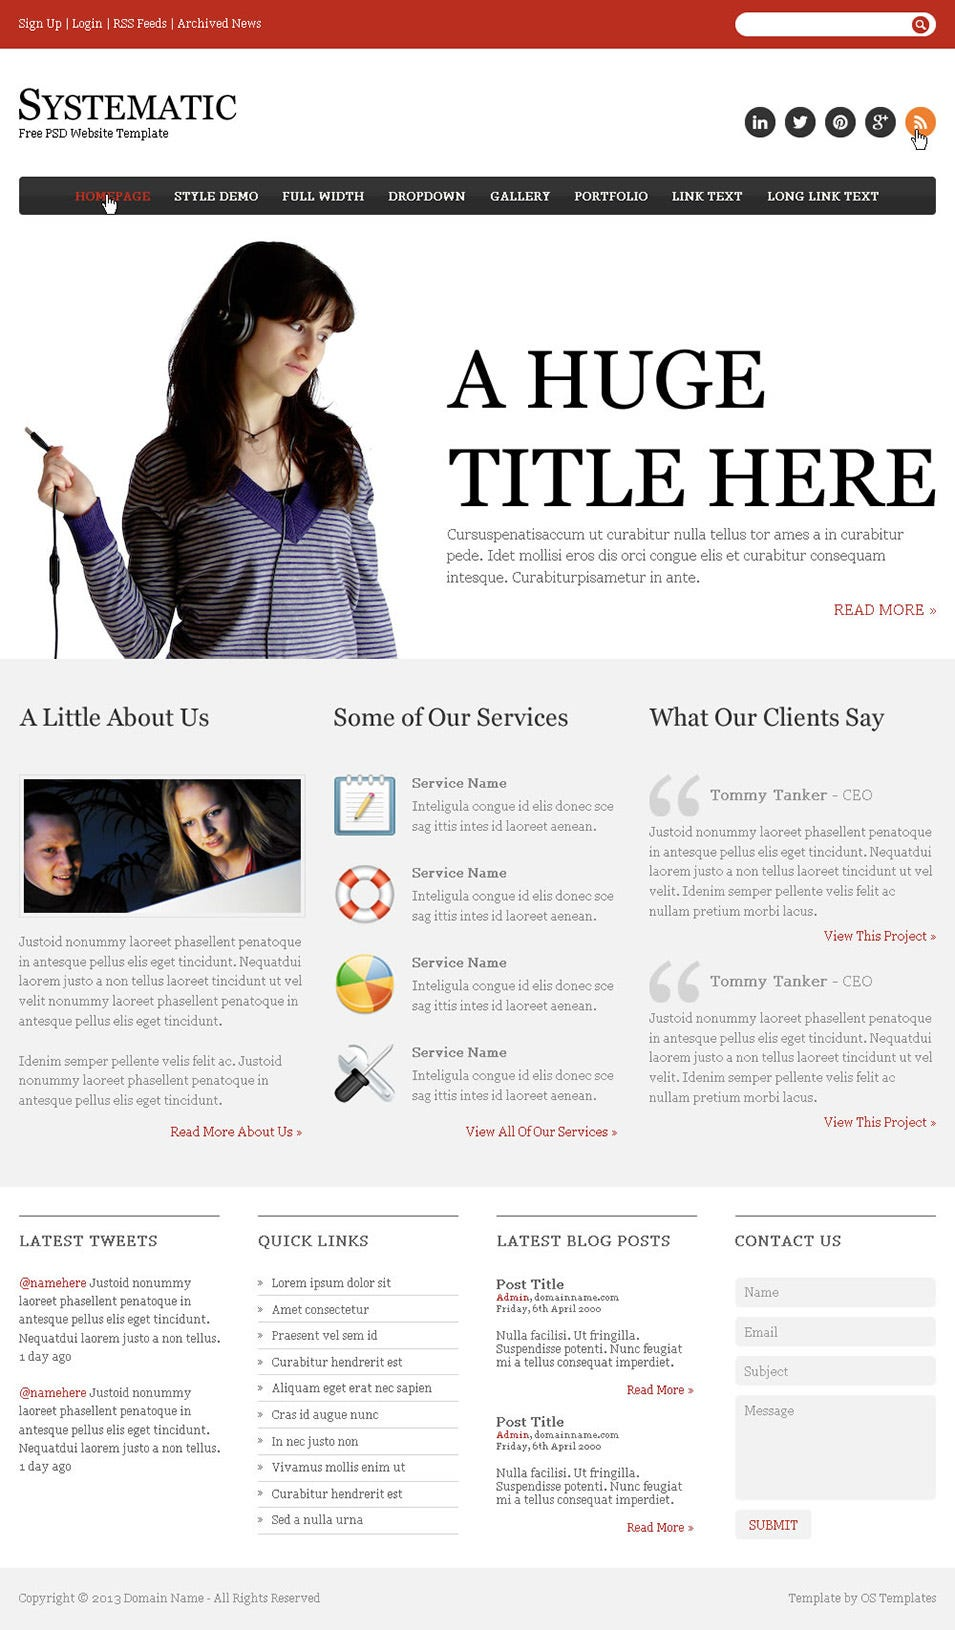 systematic free psd website template